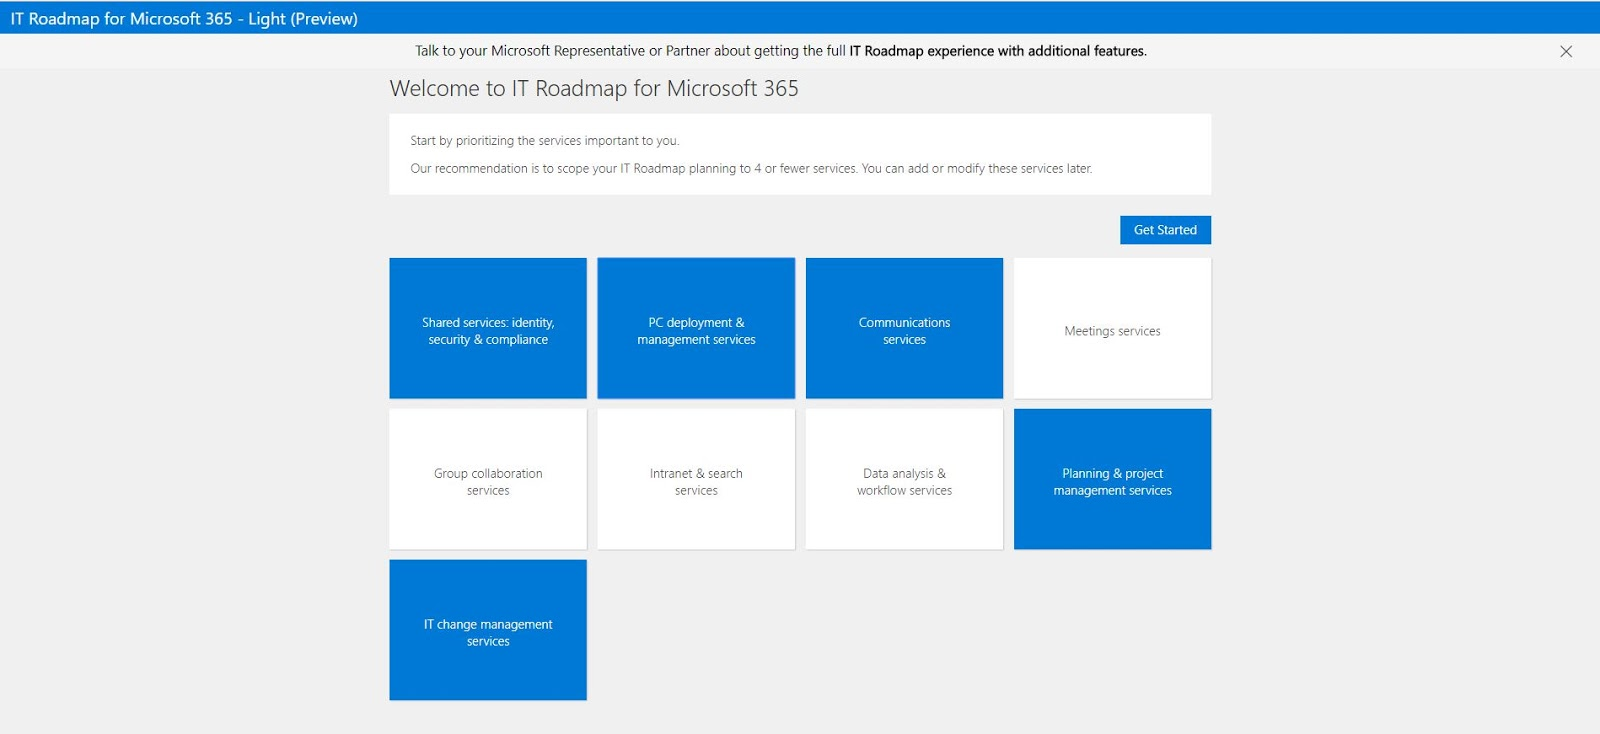 microsoft recently released the new it roadmap planning tool for microsoft 365 currently in preview to benefit organizations in their digital transformation